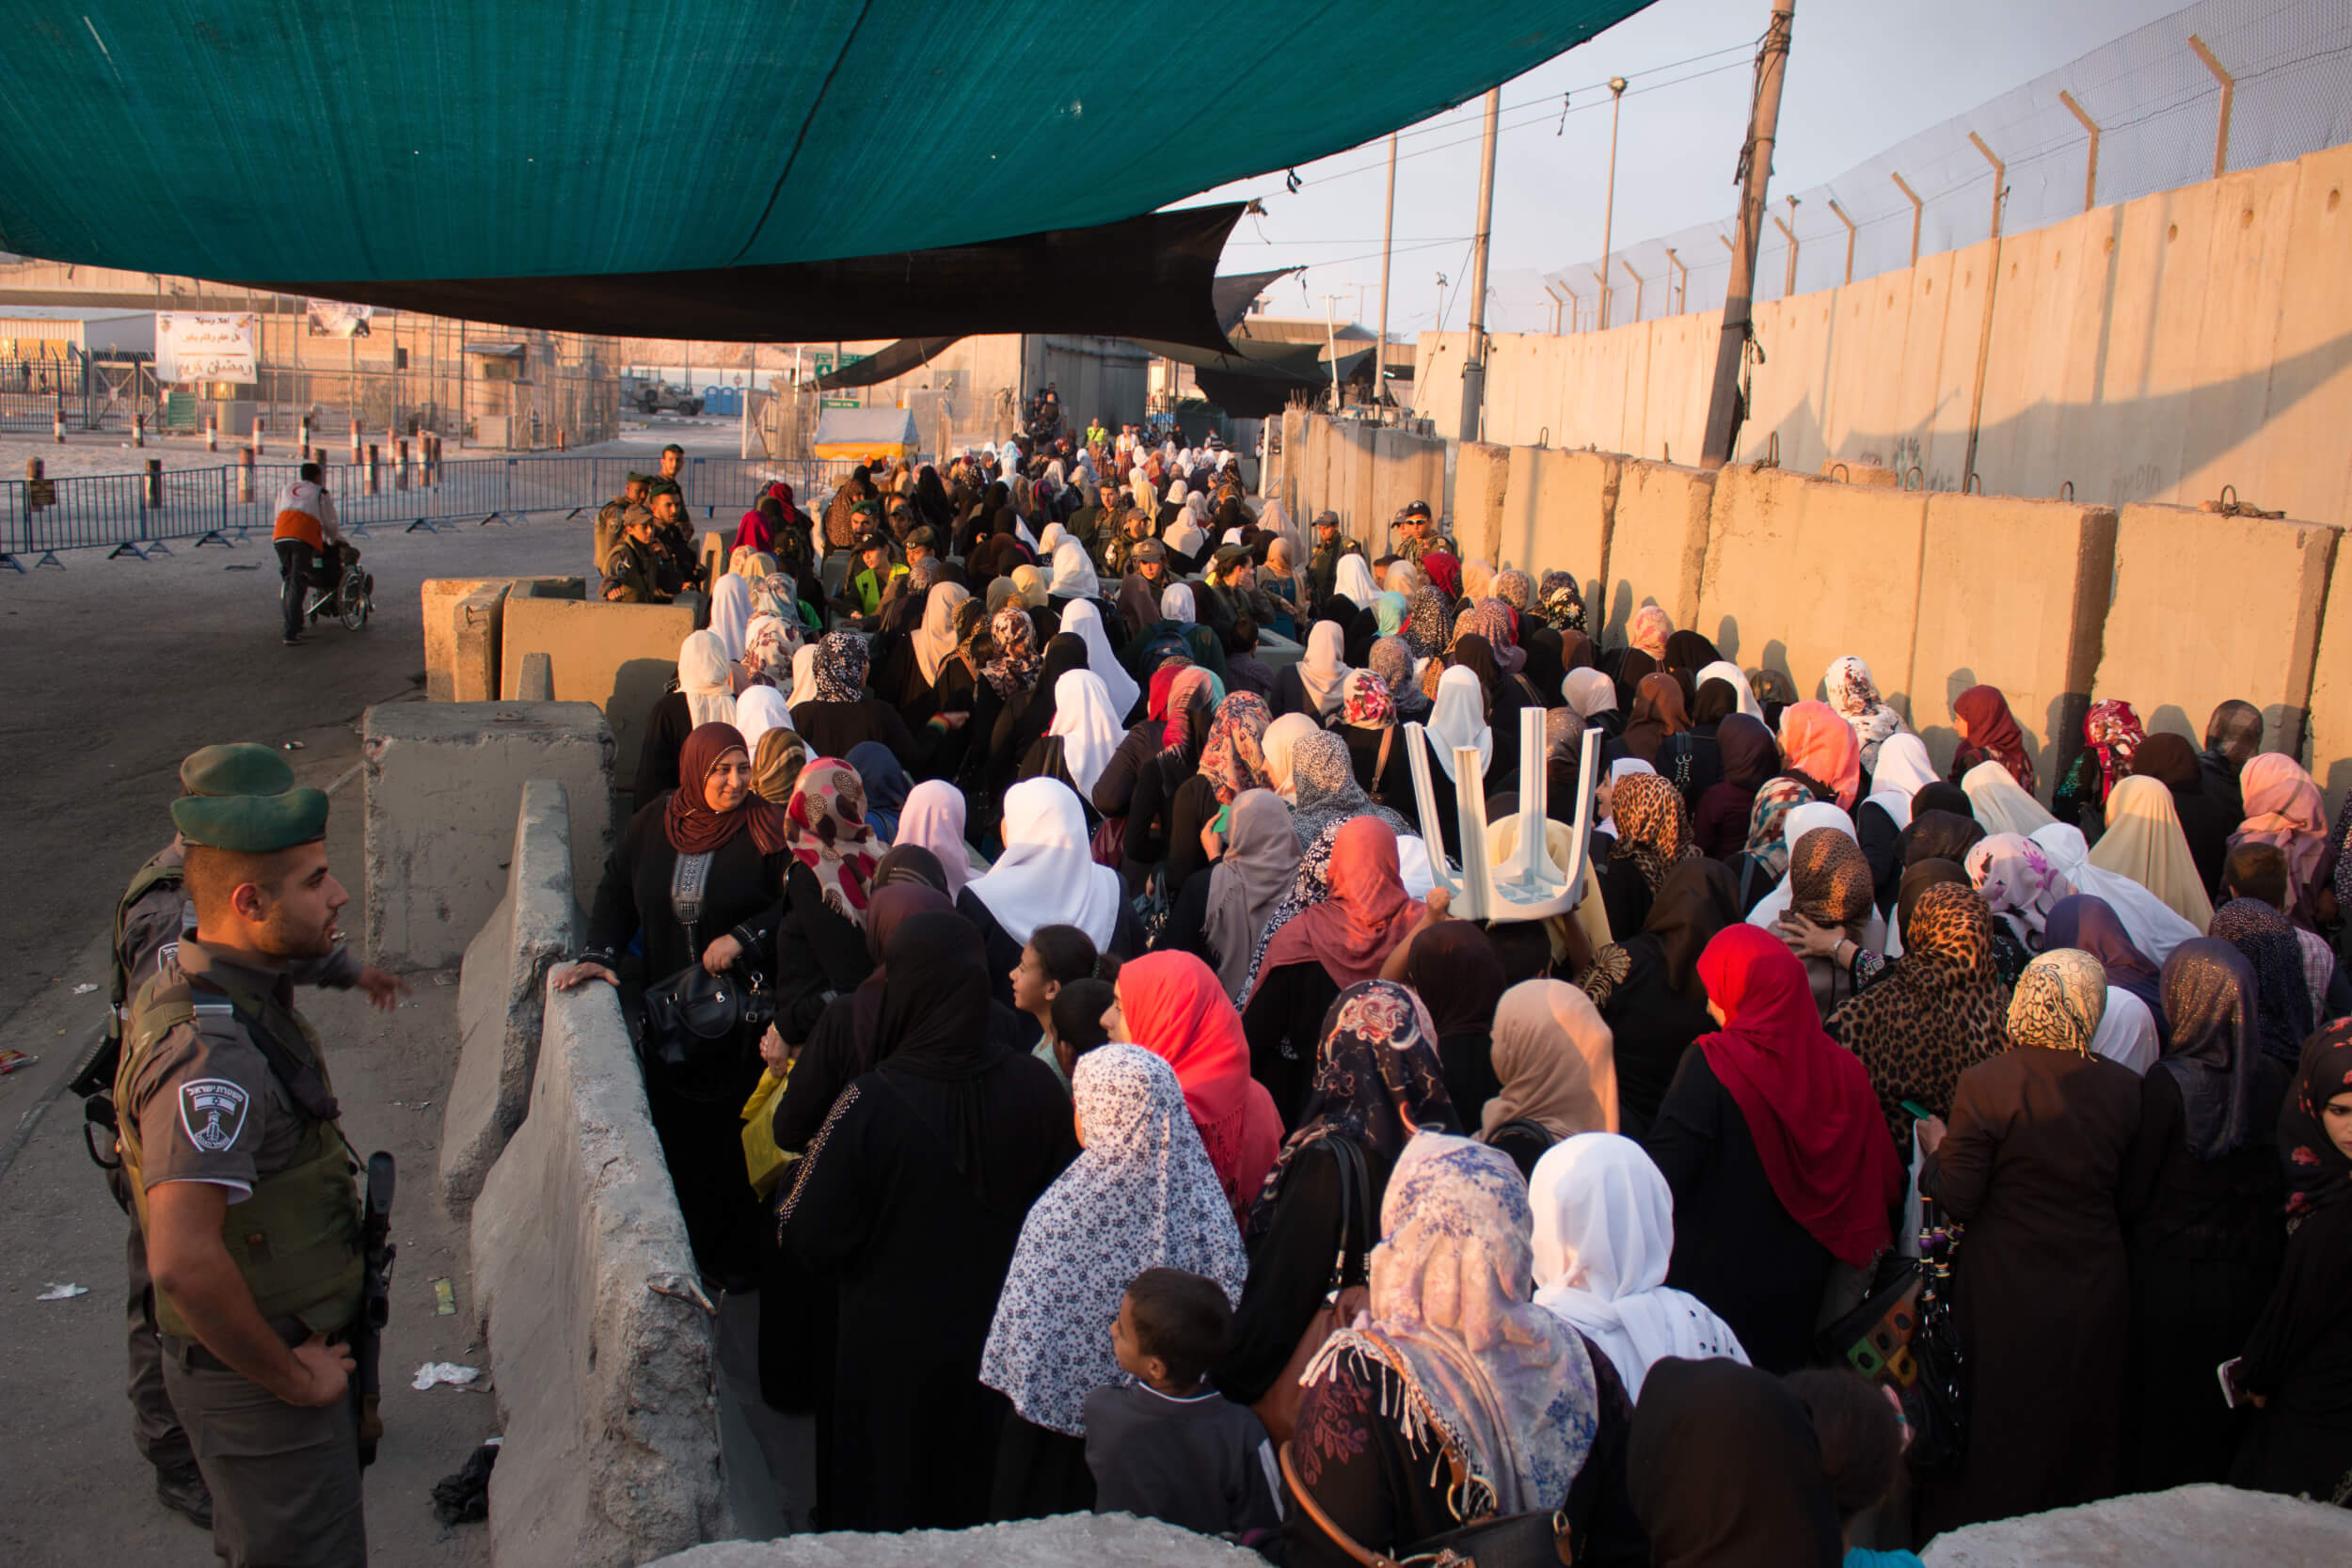 Women queue at Qalandia checkpoint around 5am, on their way into Jerusalem for Friday prayers at Al Aqsa Mosque. Qalandia checkpoint is segregated for men and women on Fridays during Ramadan. (Photo: Karam Saleem)